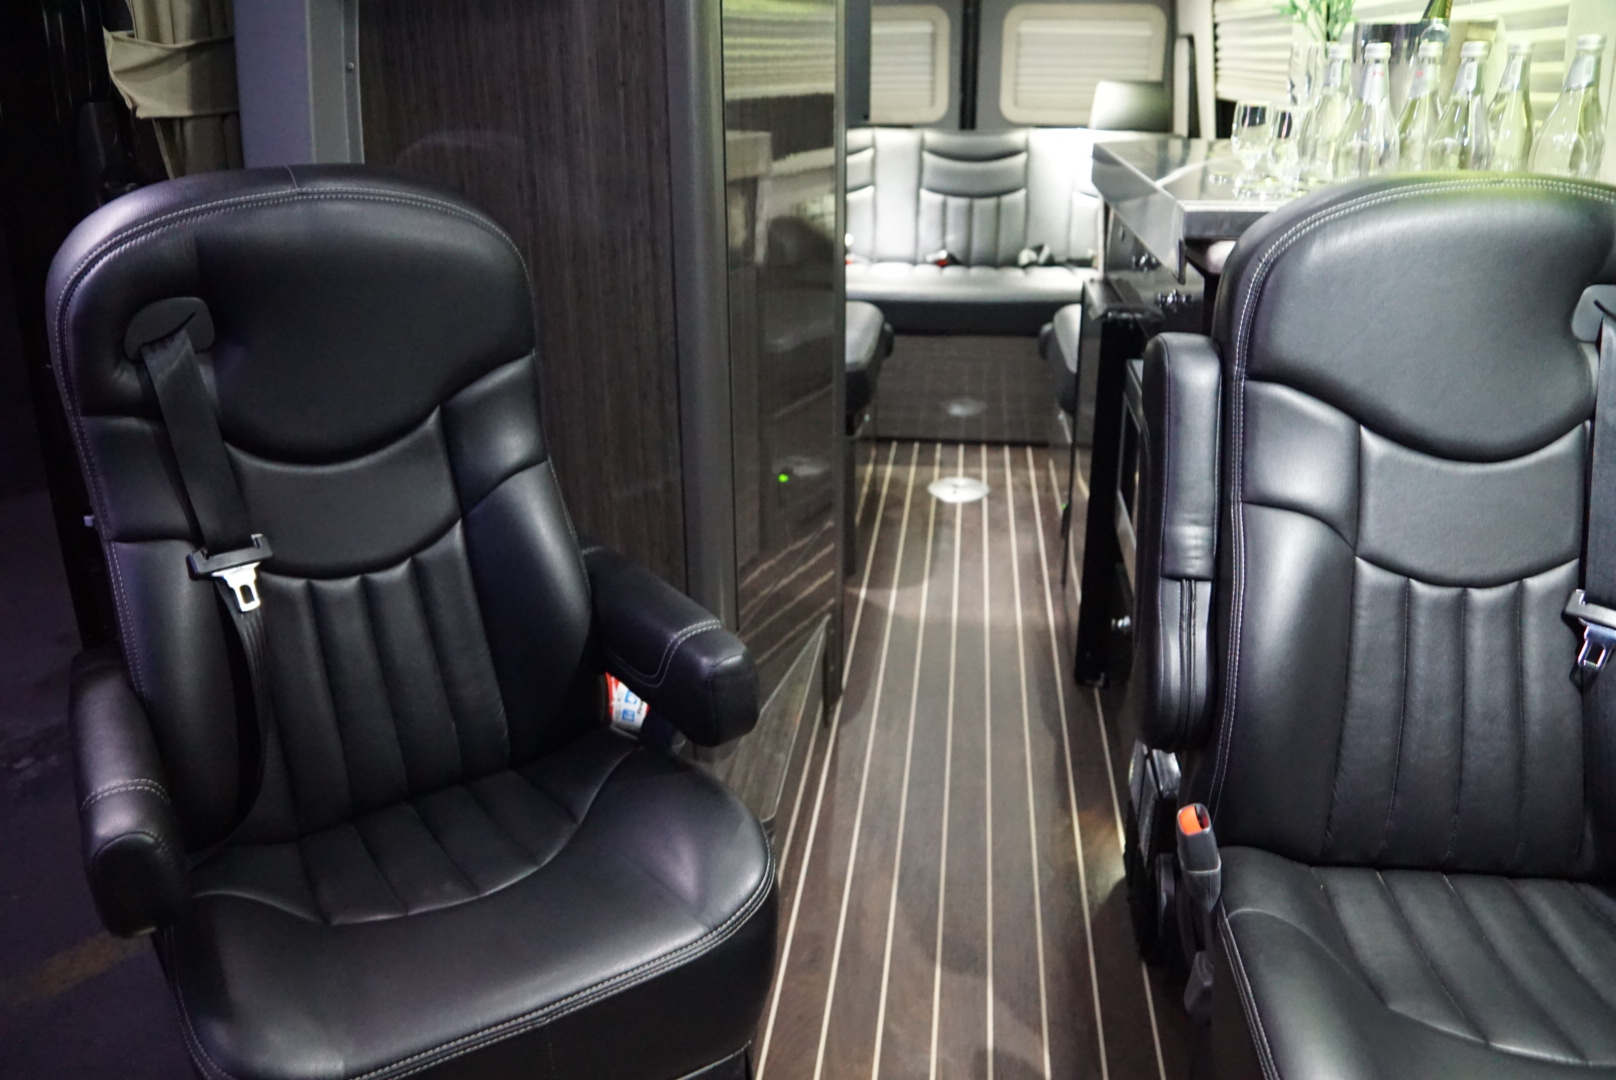 02.sprinter-interstate-interior